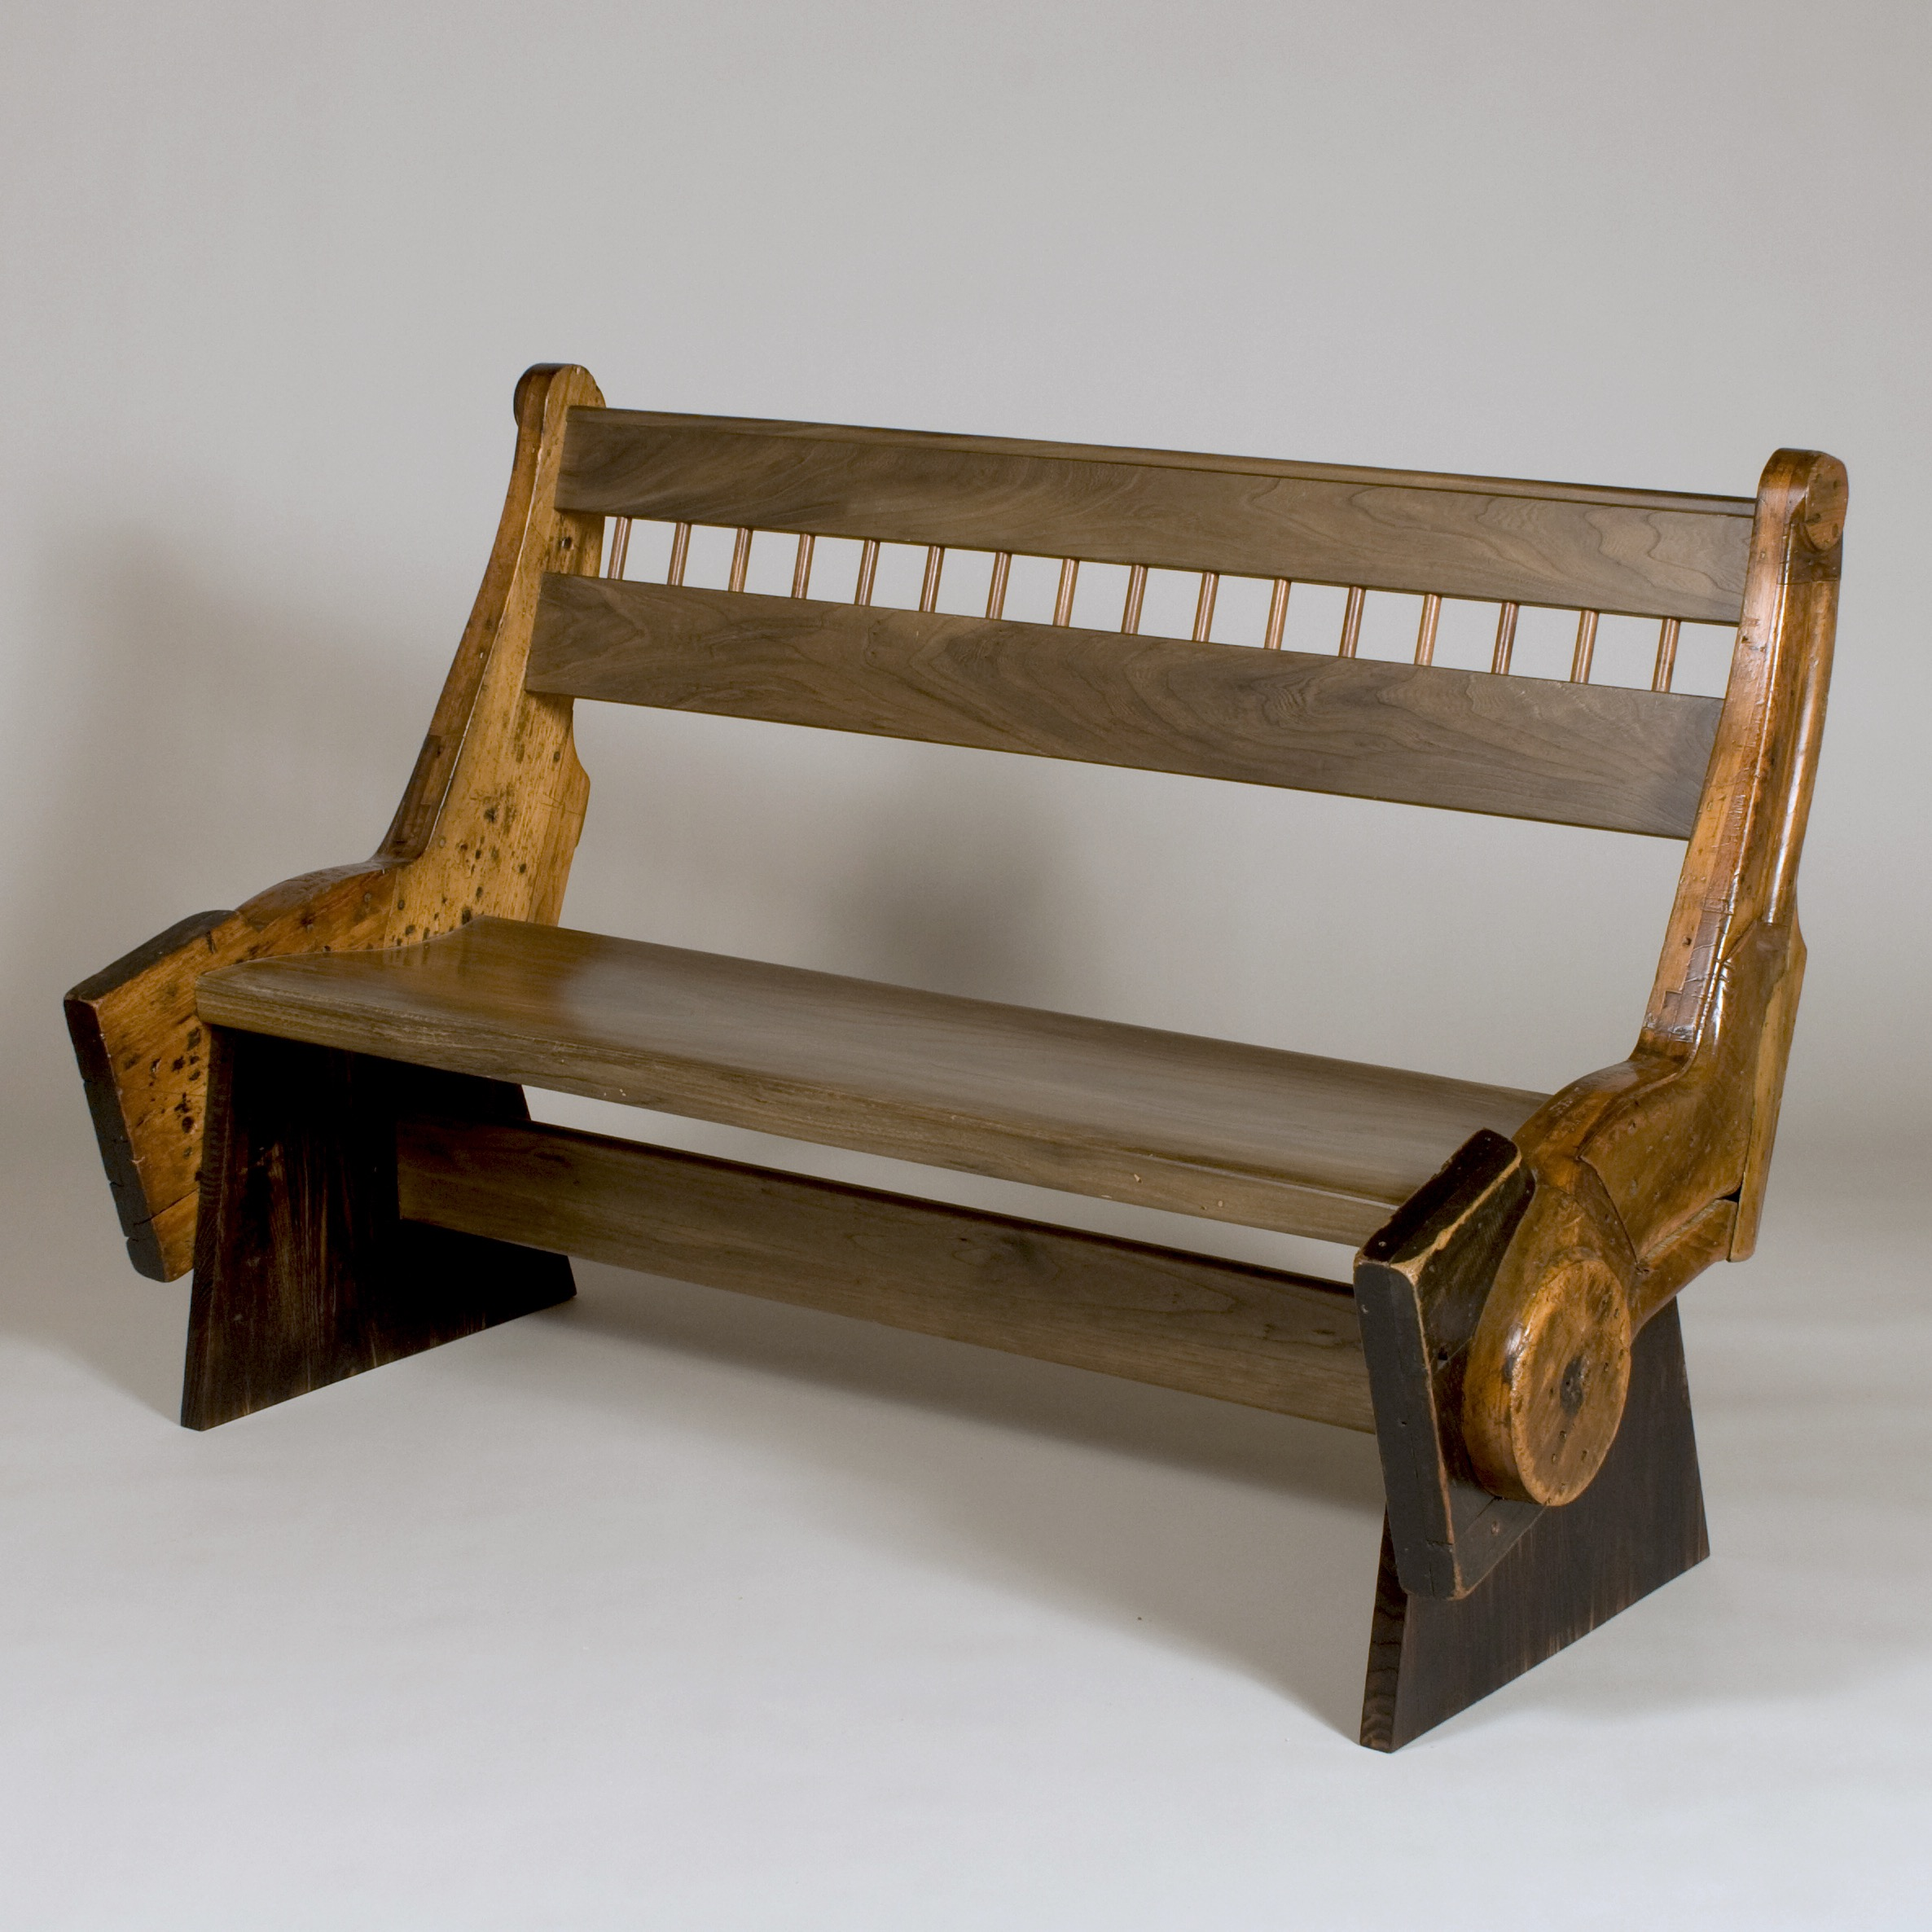 bench-pattern-form-bench-007.jpg